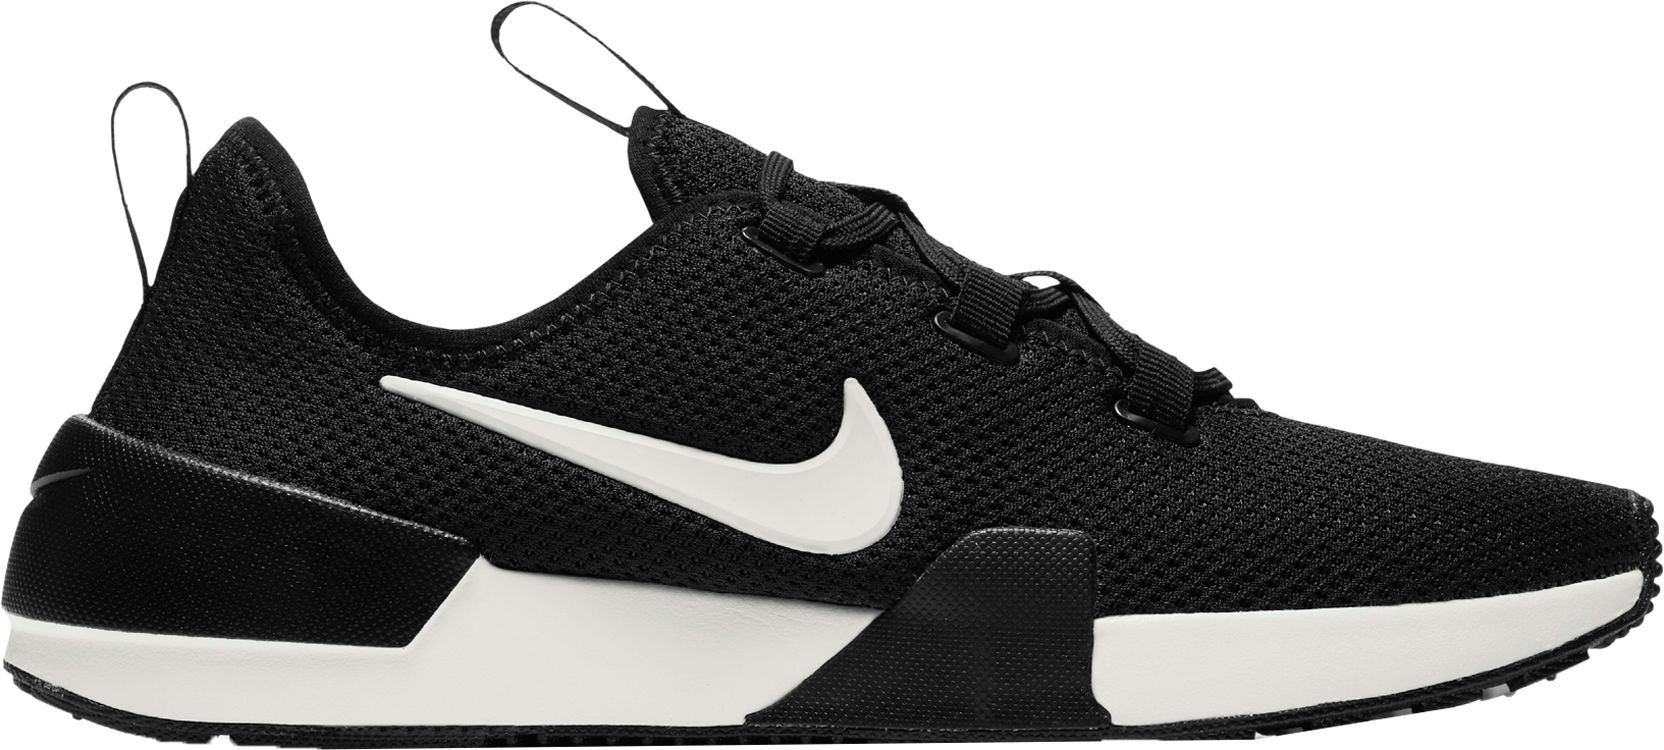 68ebd33286f4 Nike Roshe Runs Size Up Or Down - Notary Chamber